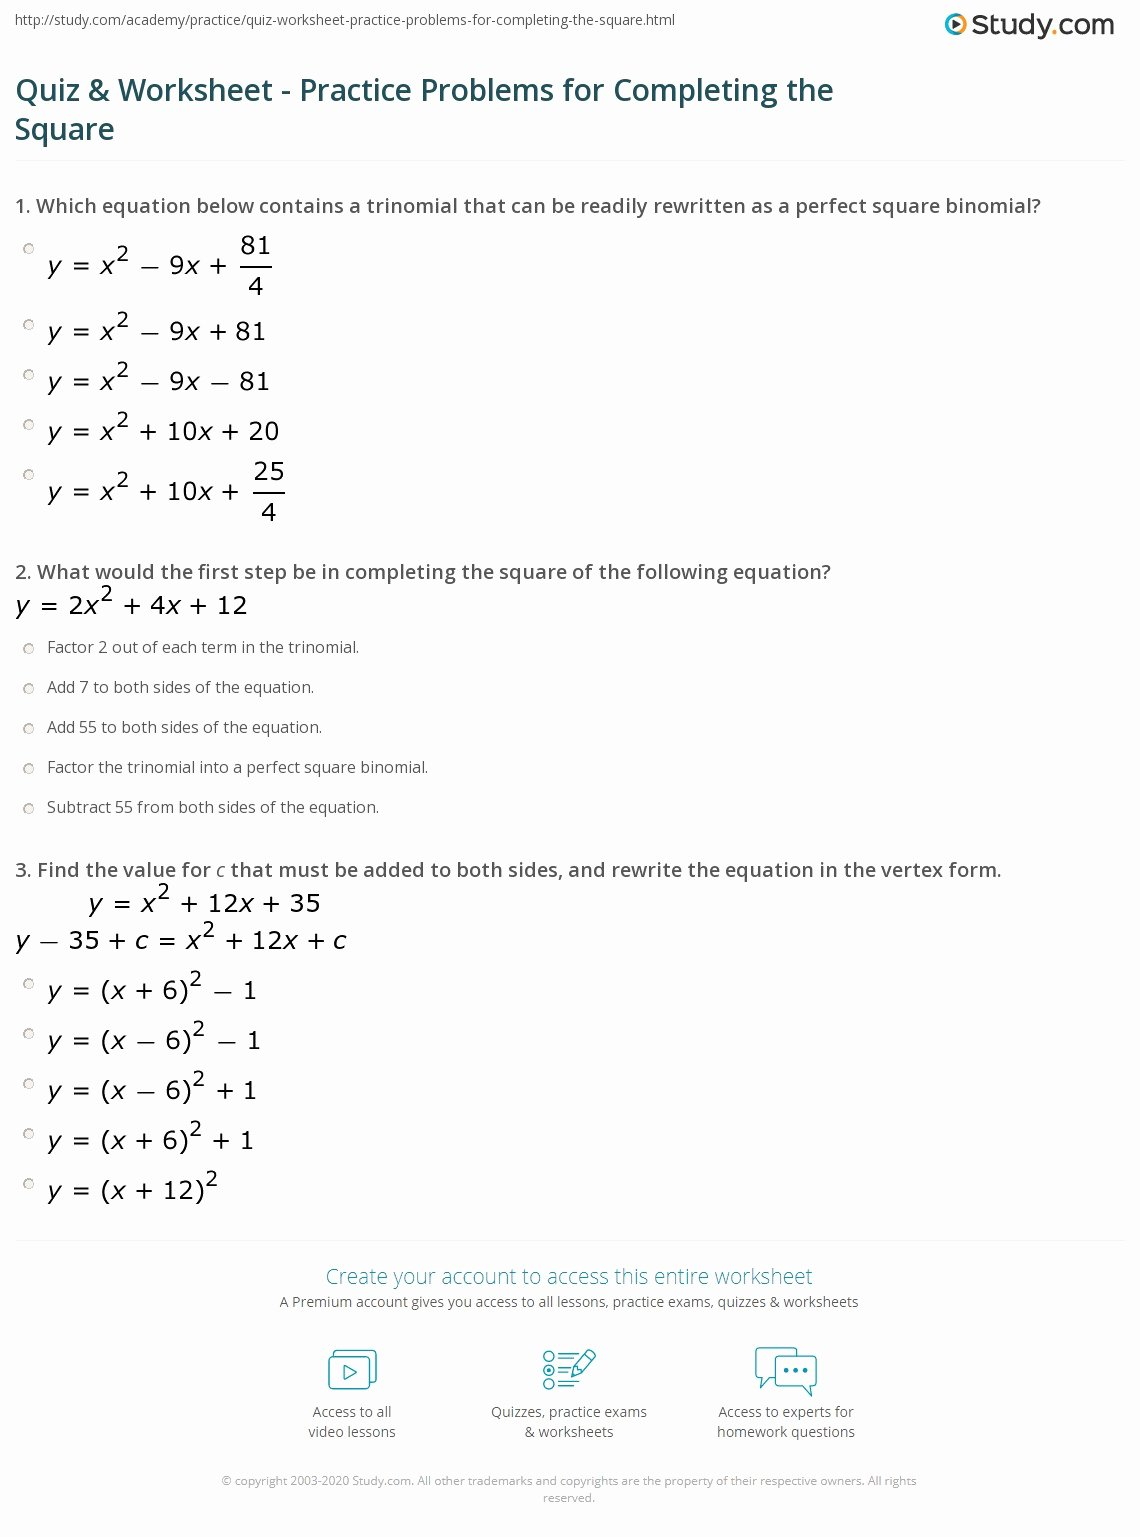 Completing the Square Practice Worksheet Free Quiz & Worksheet Practice Problems for Pleting the